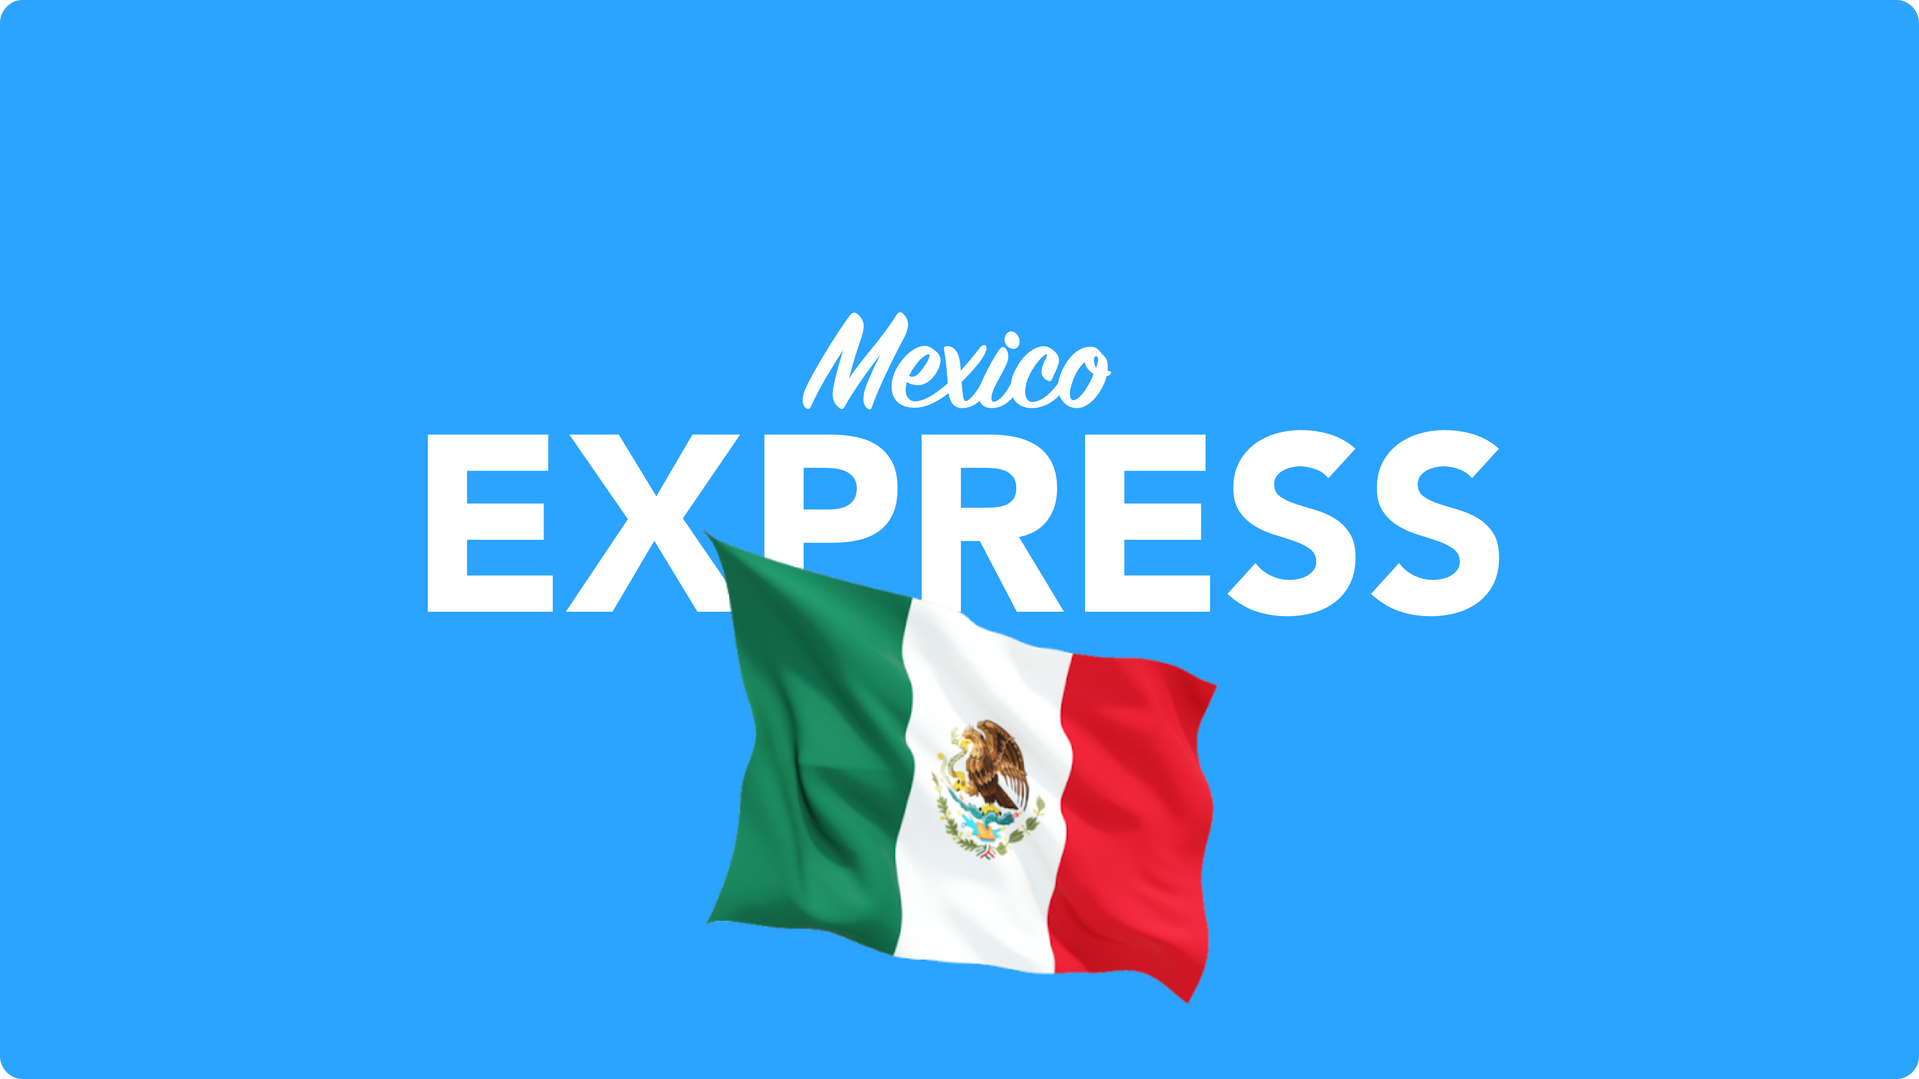 Mexico Express 4xpress.com